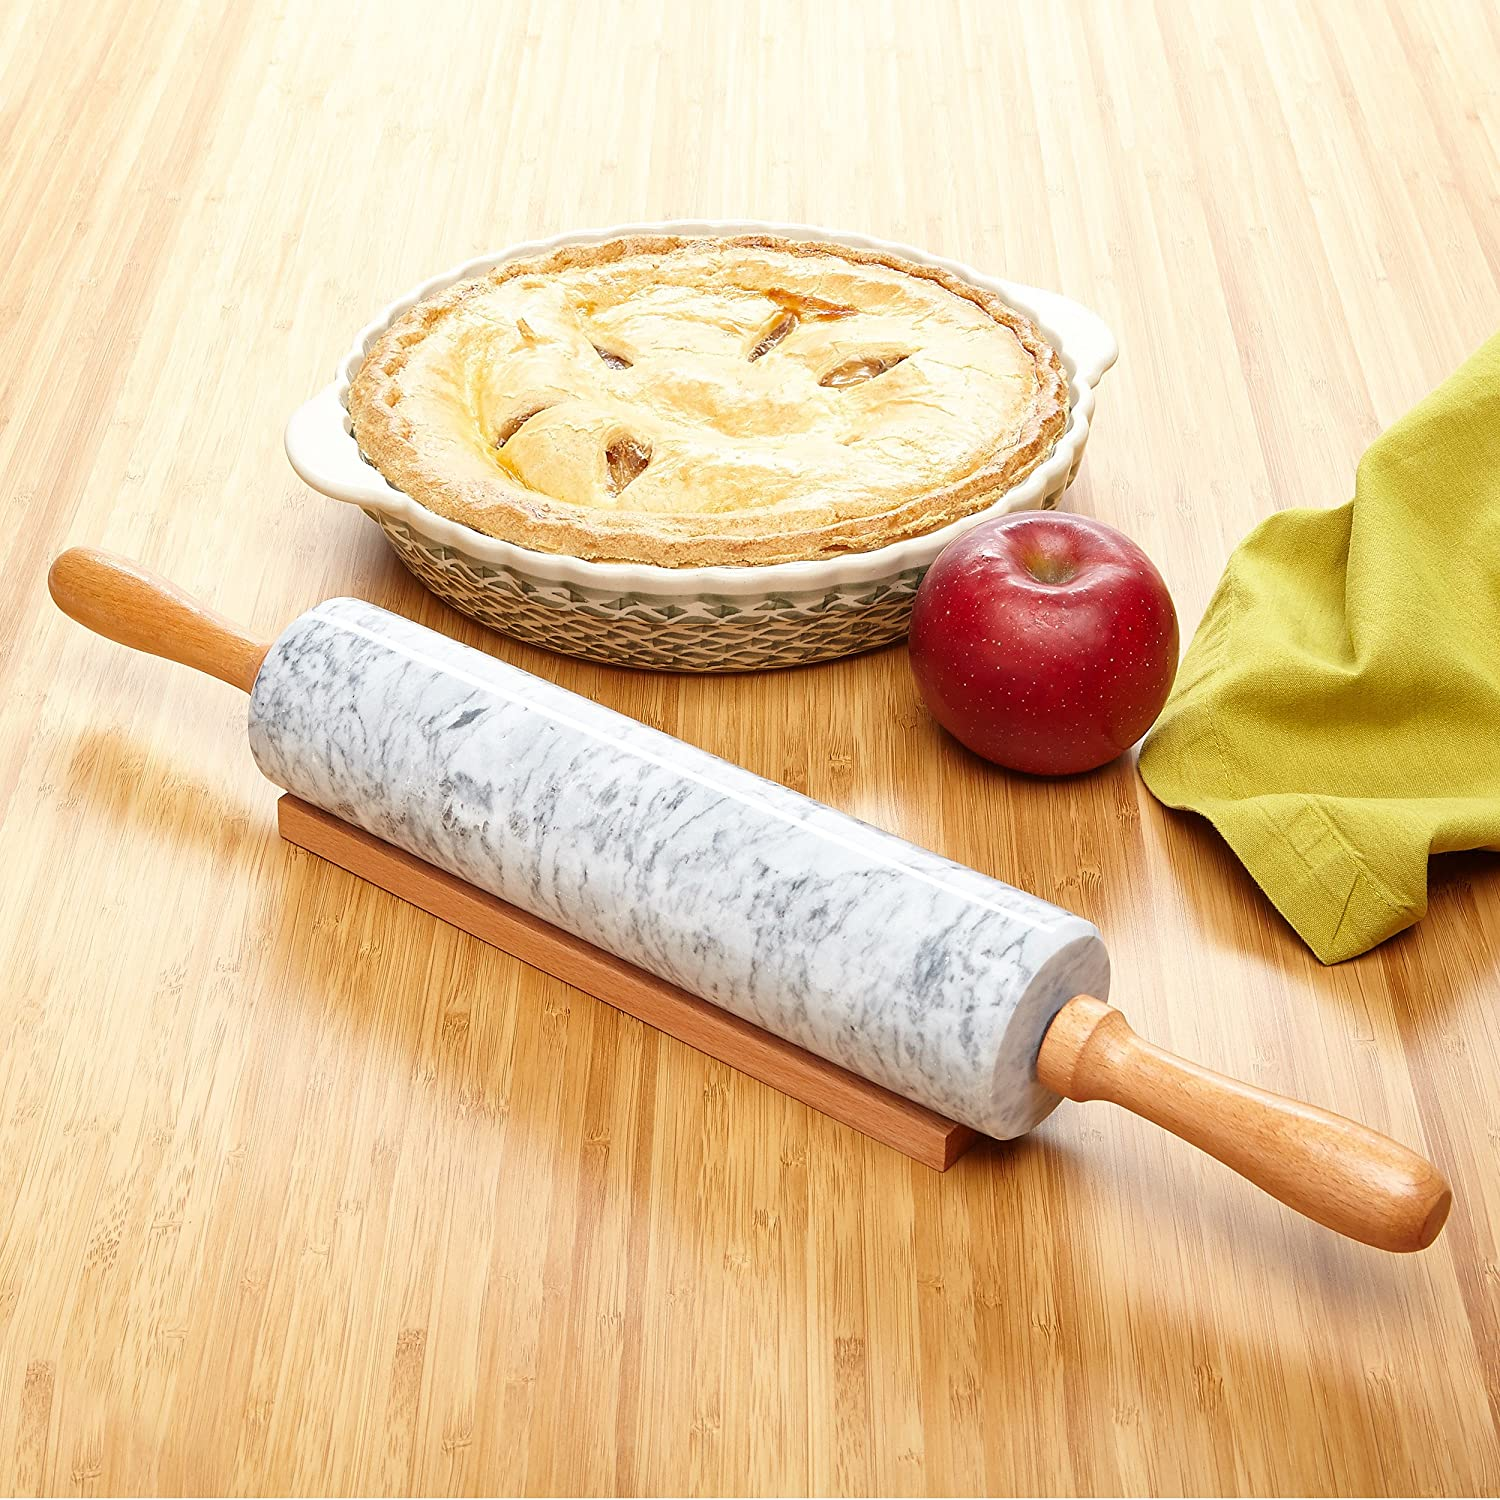 18 inch With Smooth Wooden Handles For Easy Grip And Includes Wooden Cradle Miko Marble Stone Rolling Pin